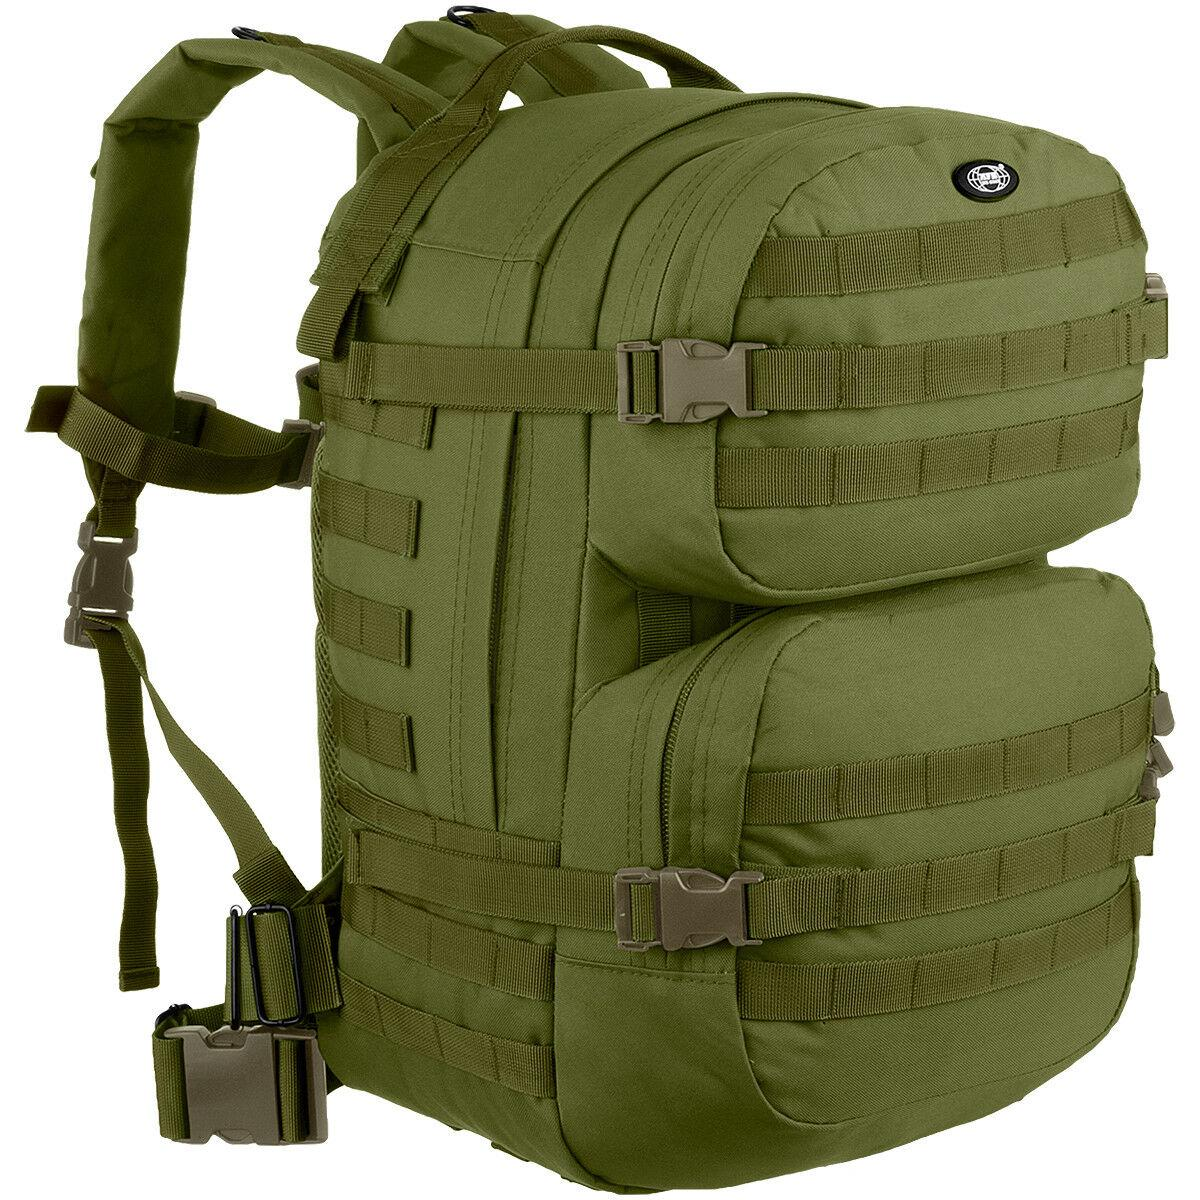 Рюкзак MFH Assault II backpack олива